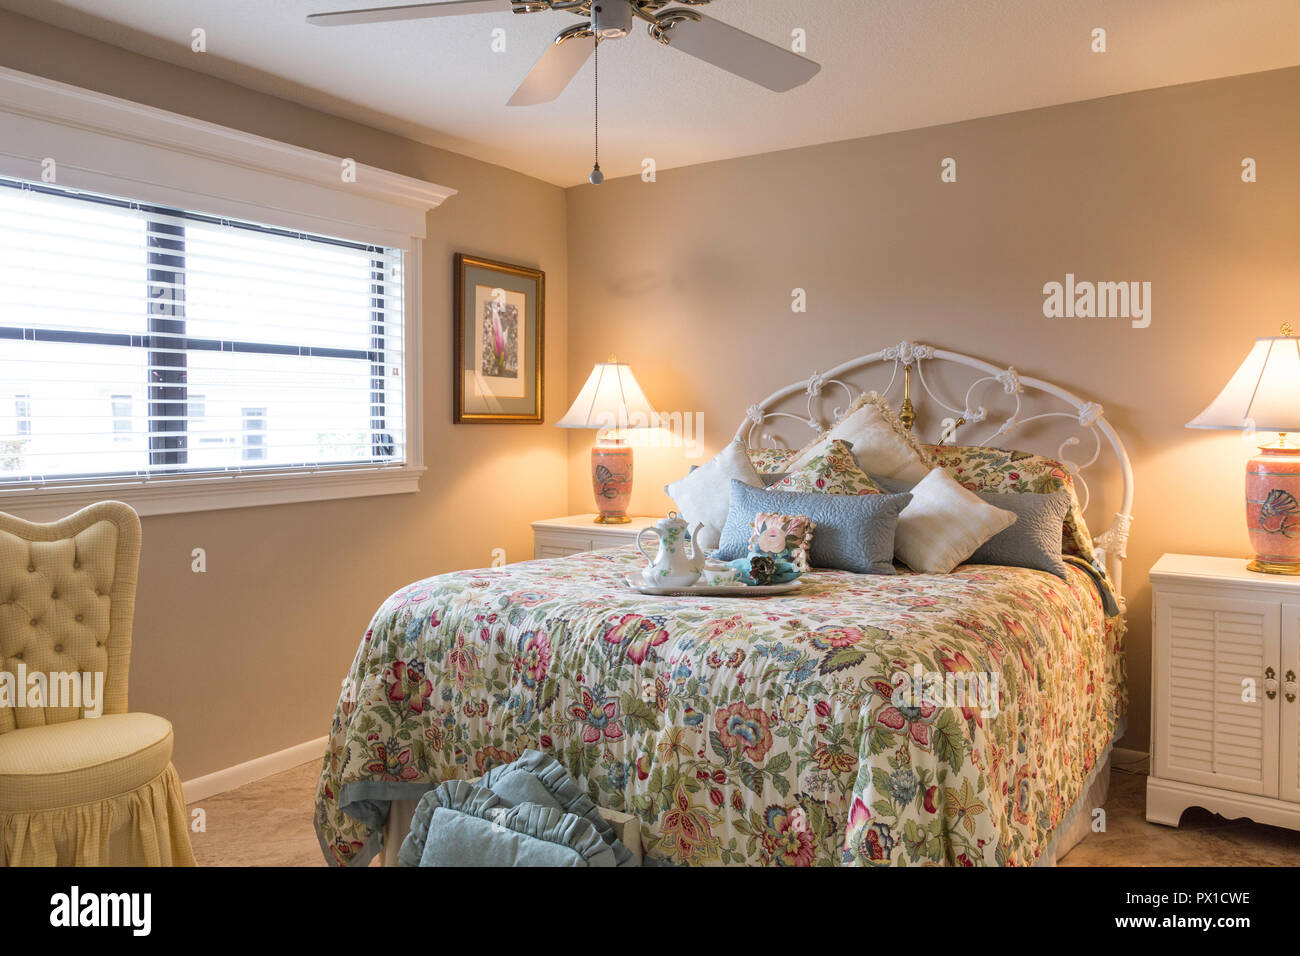 Upscale Ceiling Fan Designer Bedroom Upscale Home Florida Usa Stock Photo 222537546